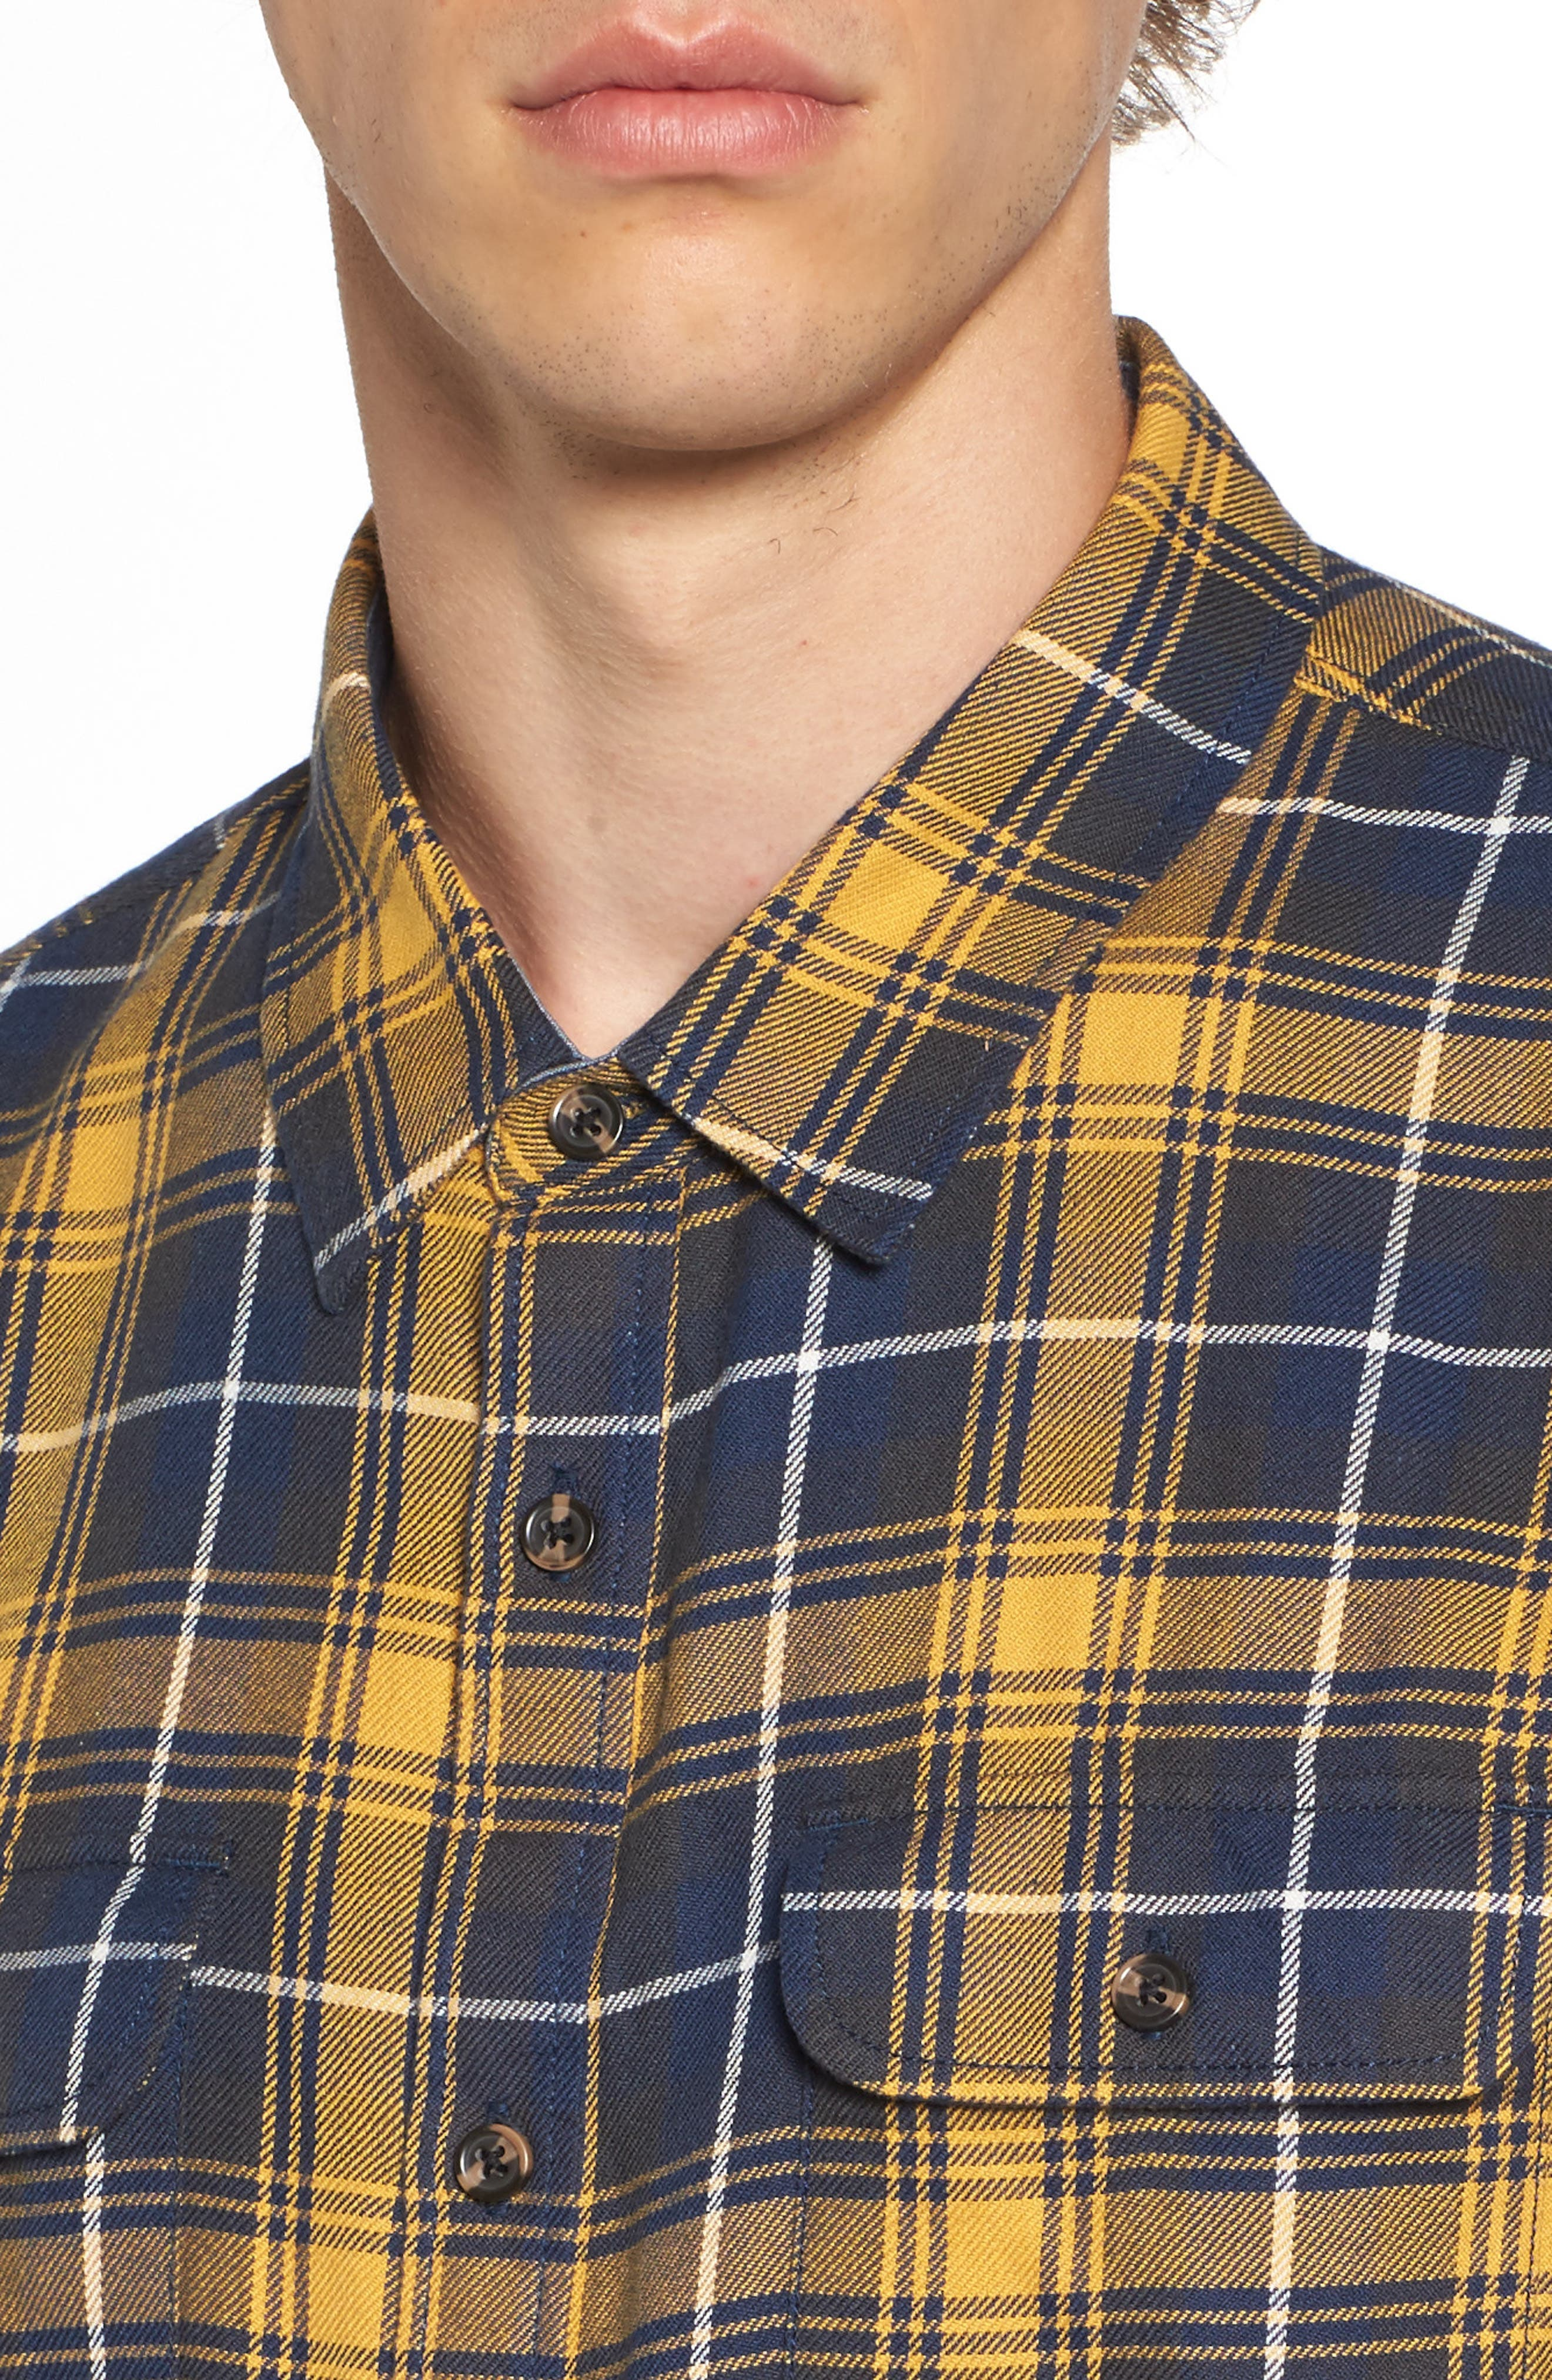 Alternate Image 4  - Vans Sycamore Plaid Flannel Sport Shirt